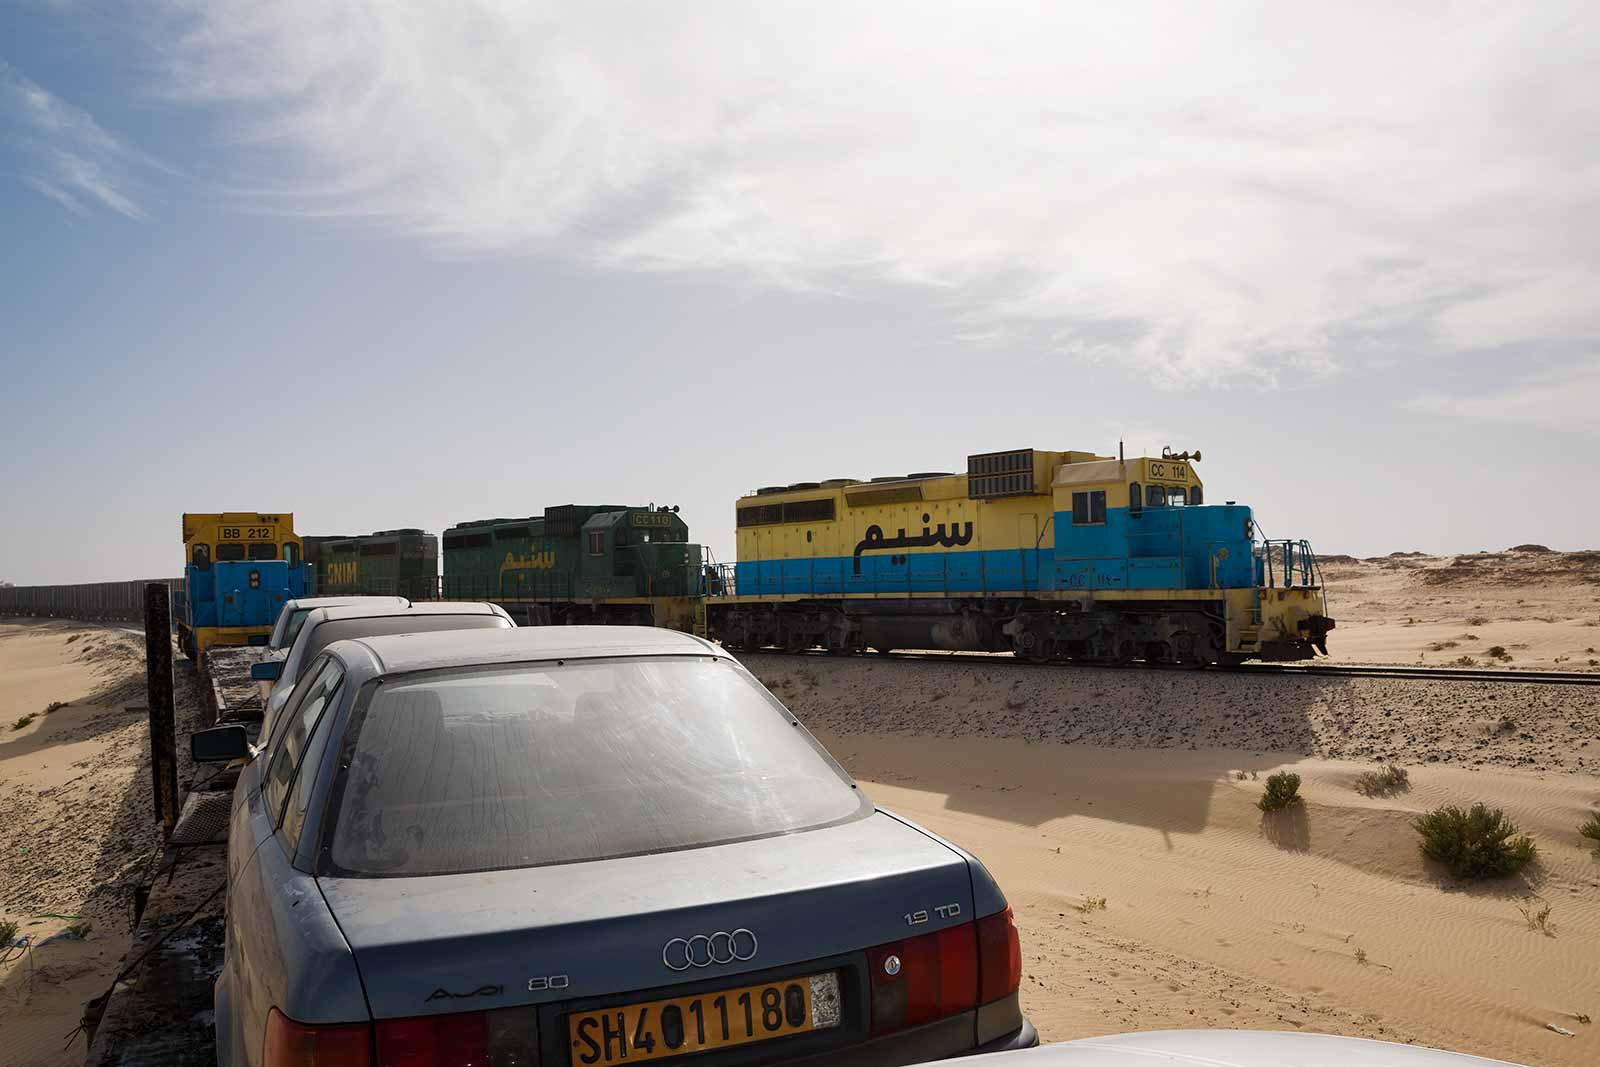 The Mauritania Railway serves not only as the sole connection between remote locations and the country's only major shipping port, Nouadhibou, but as free transport for locals seeking to travel from isolated communities to the coast.